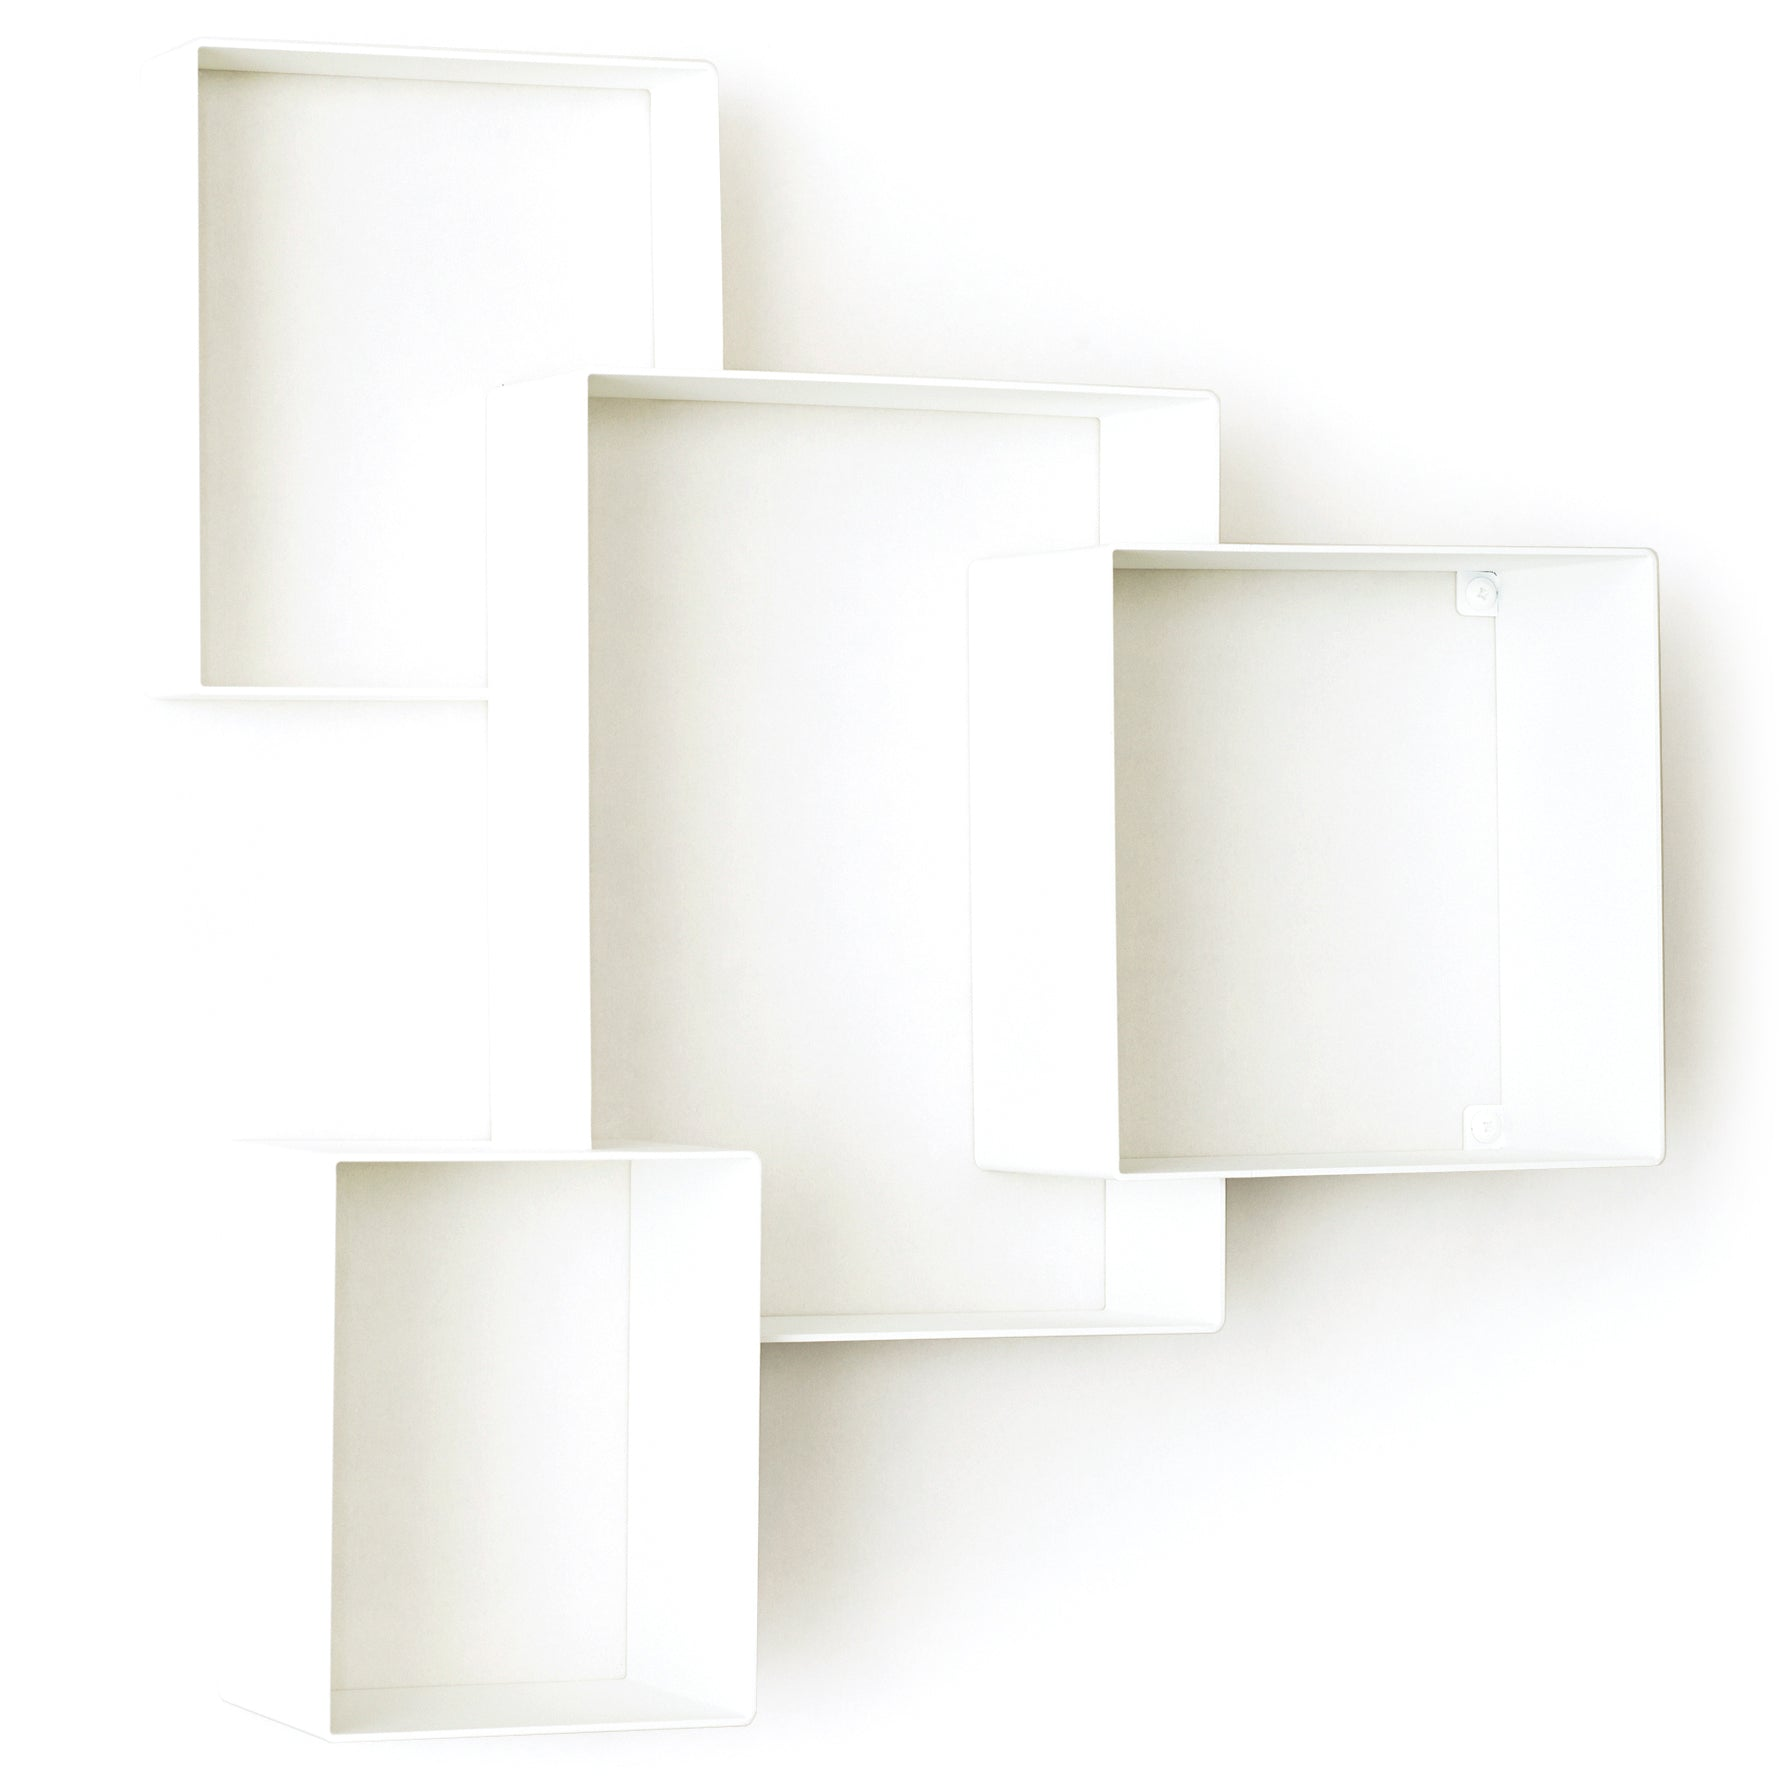 Cloud Cabinet: White Cabinet